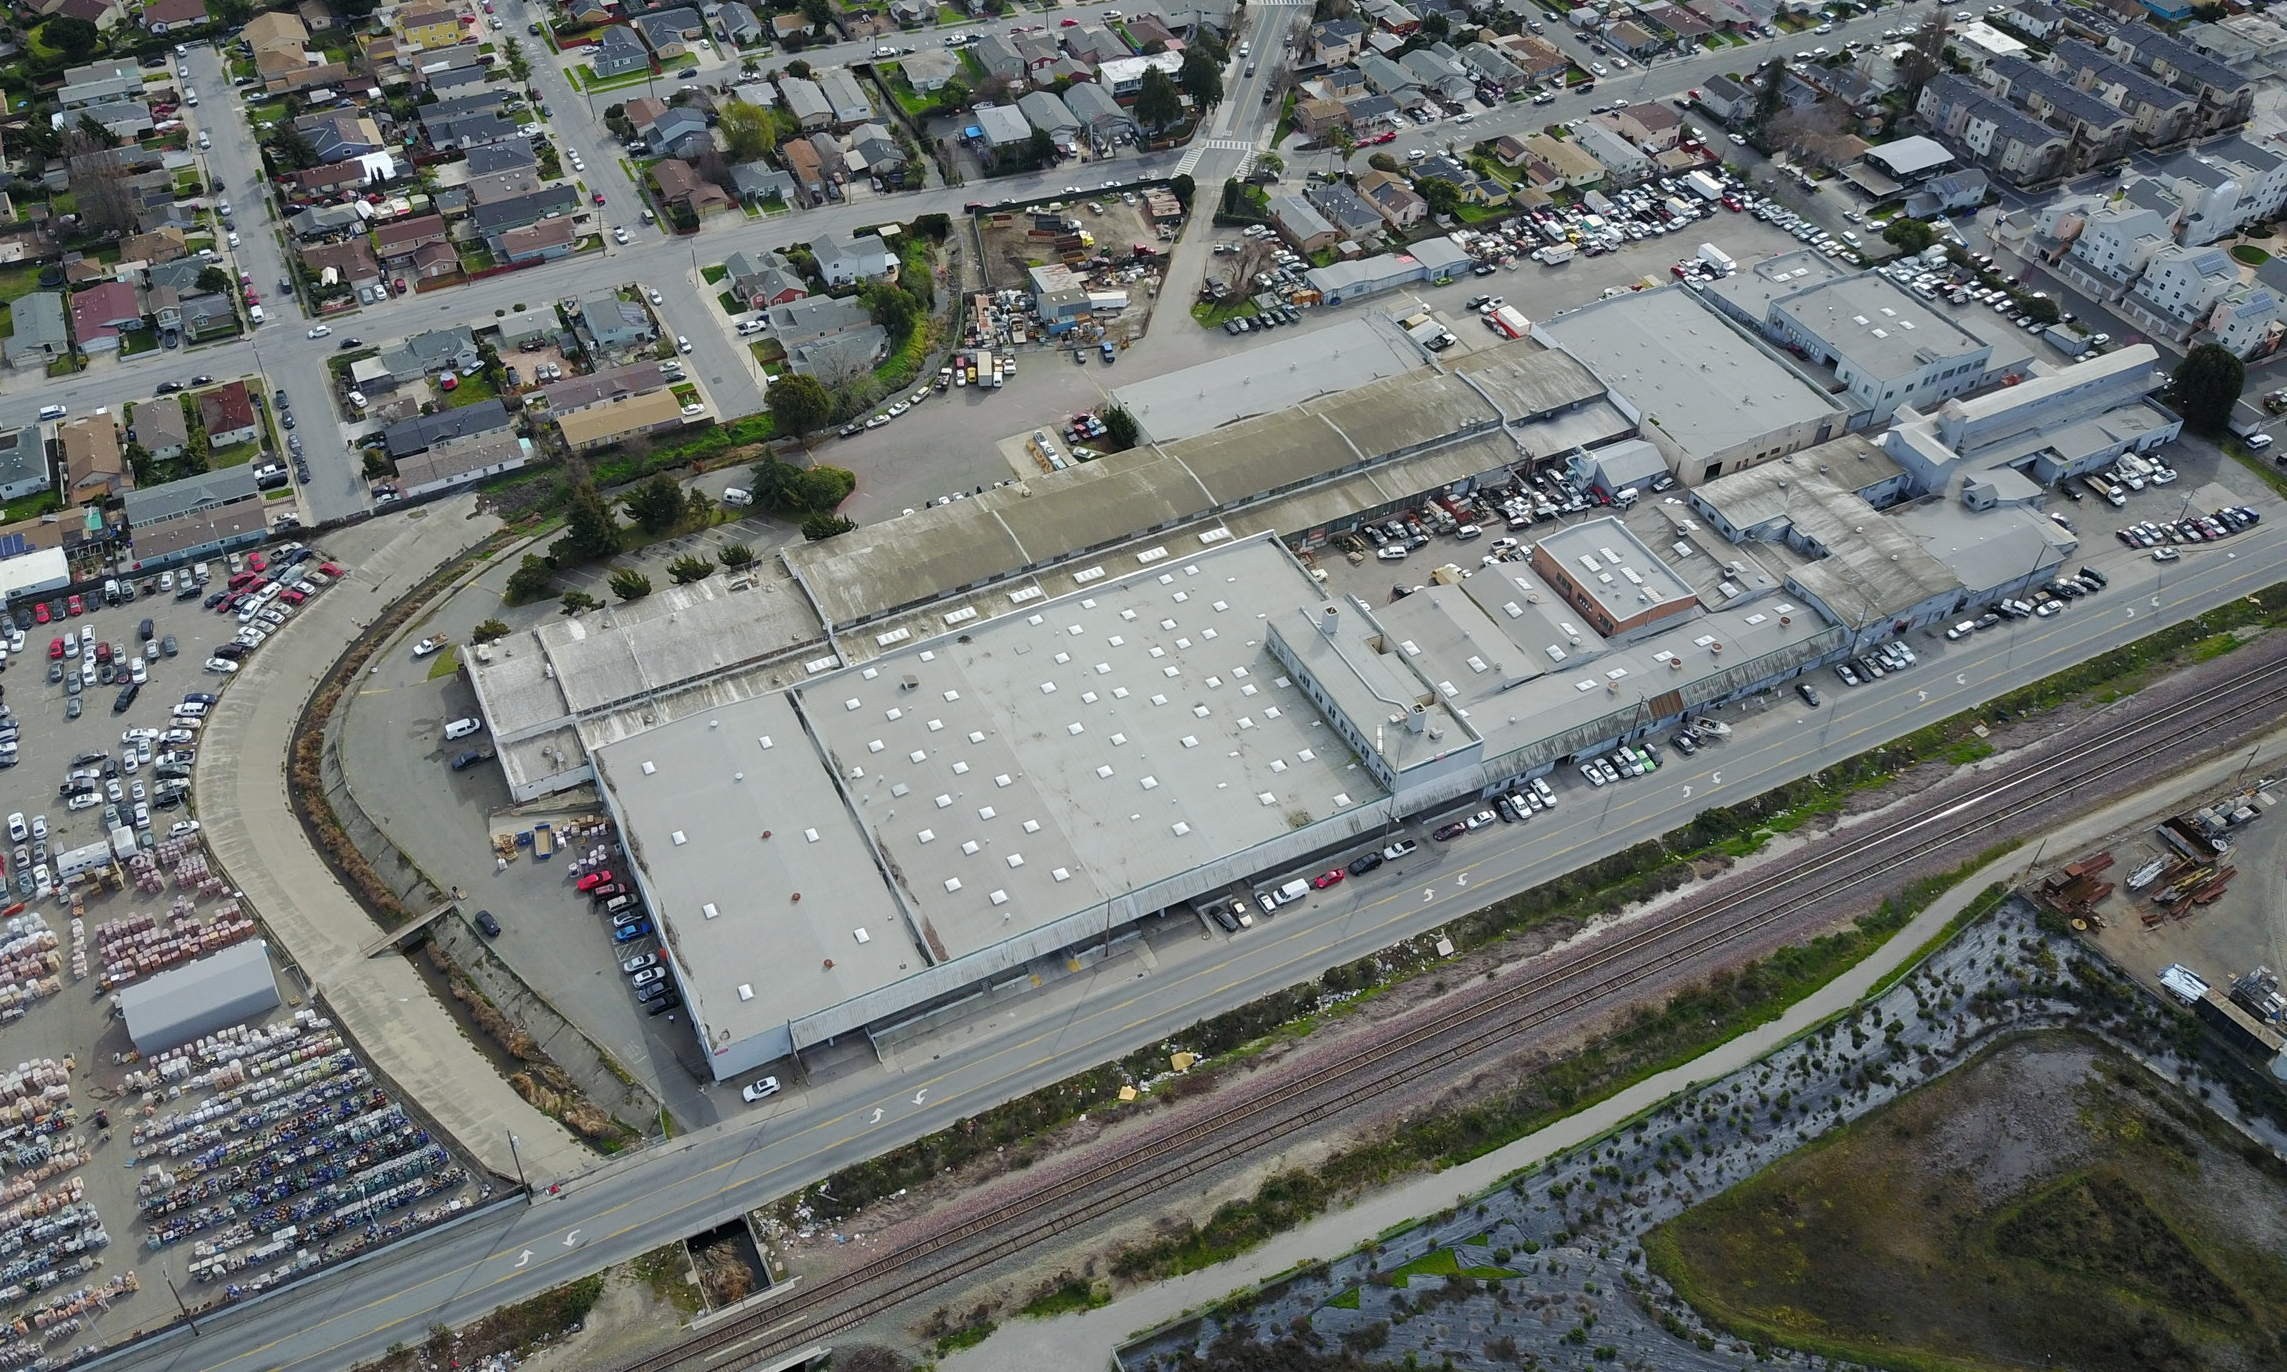 1021 Broadway Ave, San Pablo, CA 94806 277,080 SF Industrial Building on 622,163 SF Lot $13,500,000